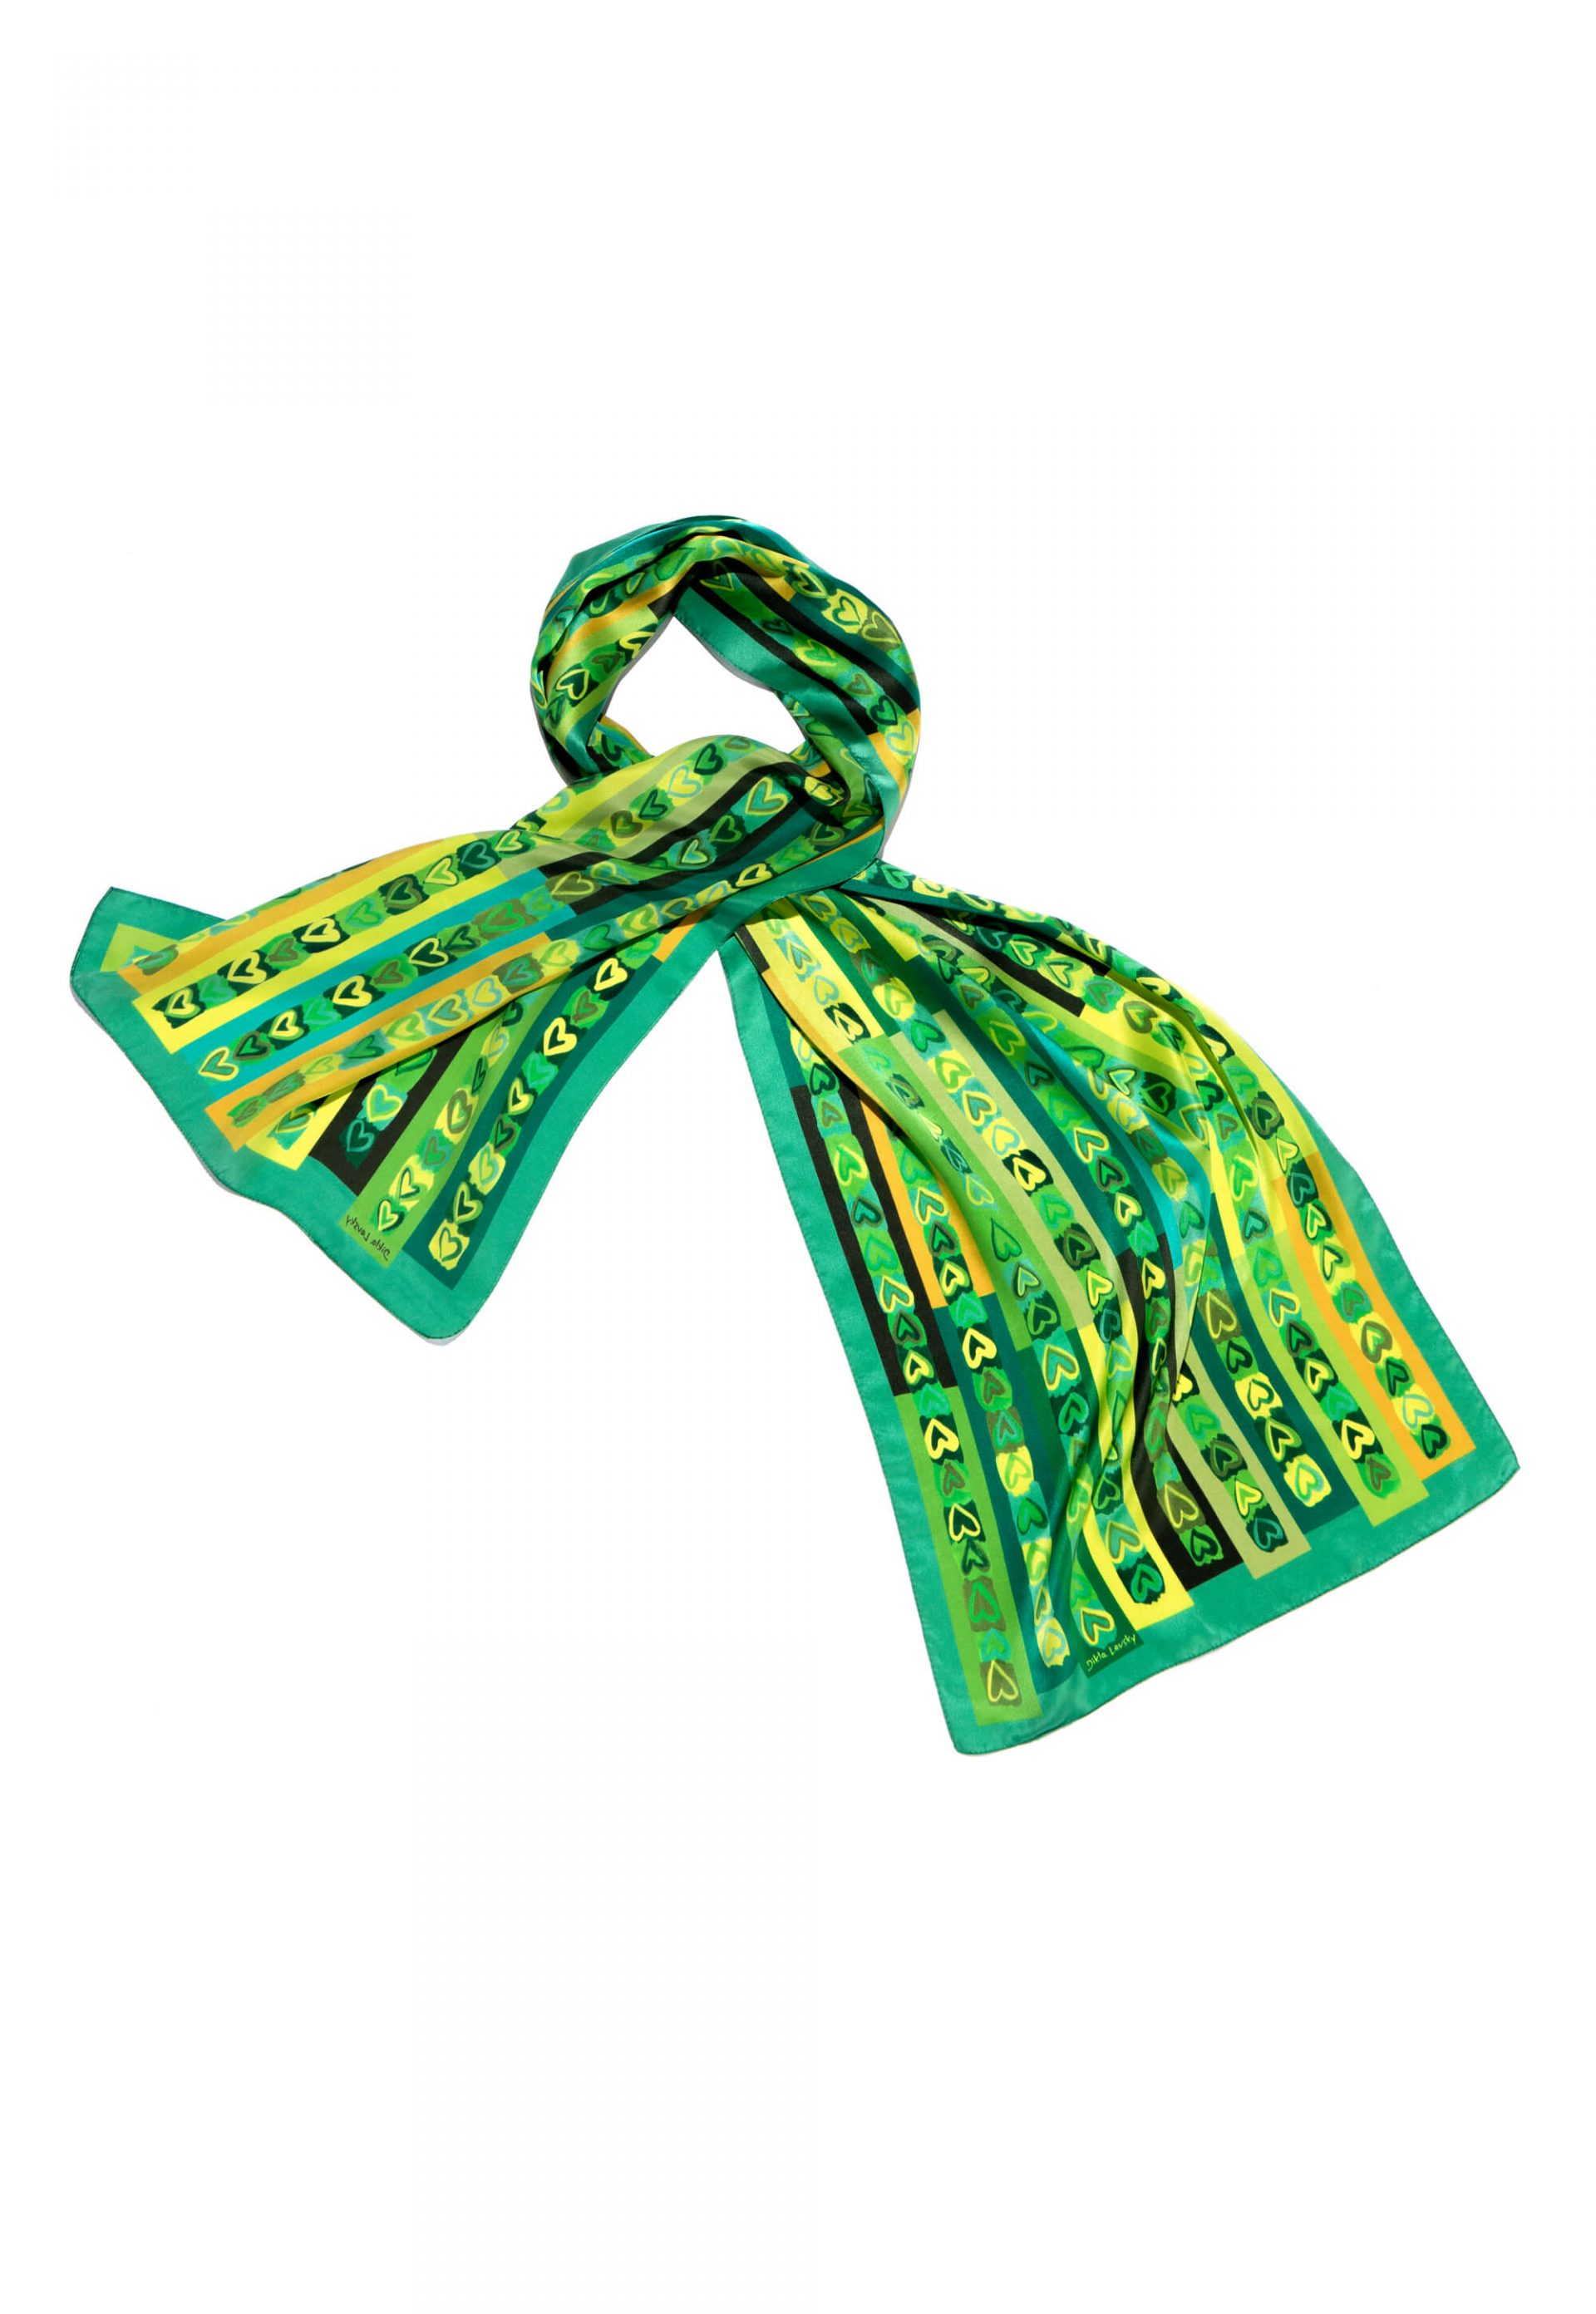 Printed silk scarf in green tones with hand drawn hearts by Dikla Levsky